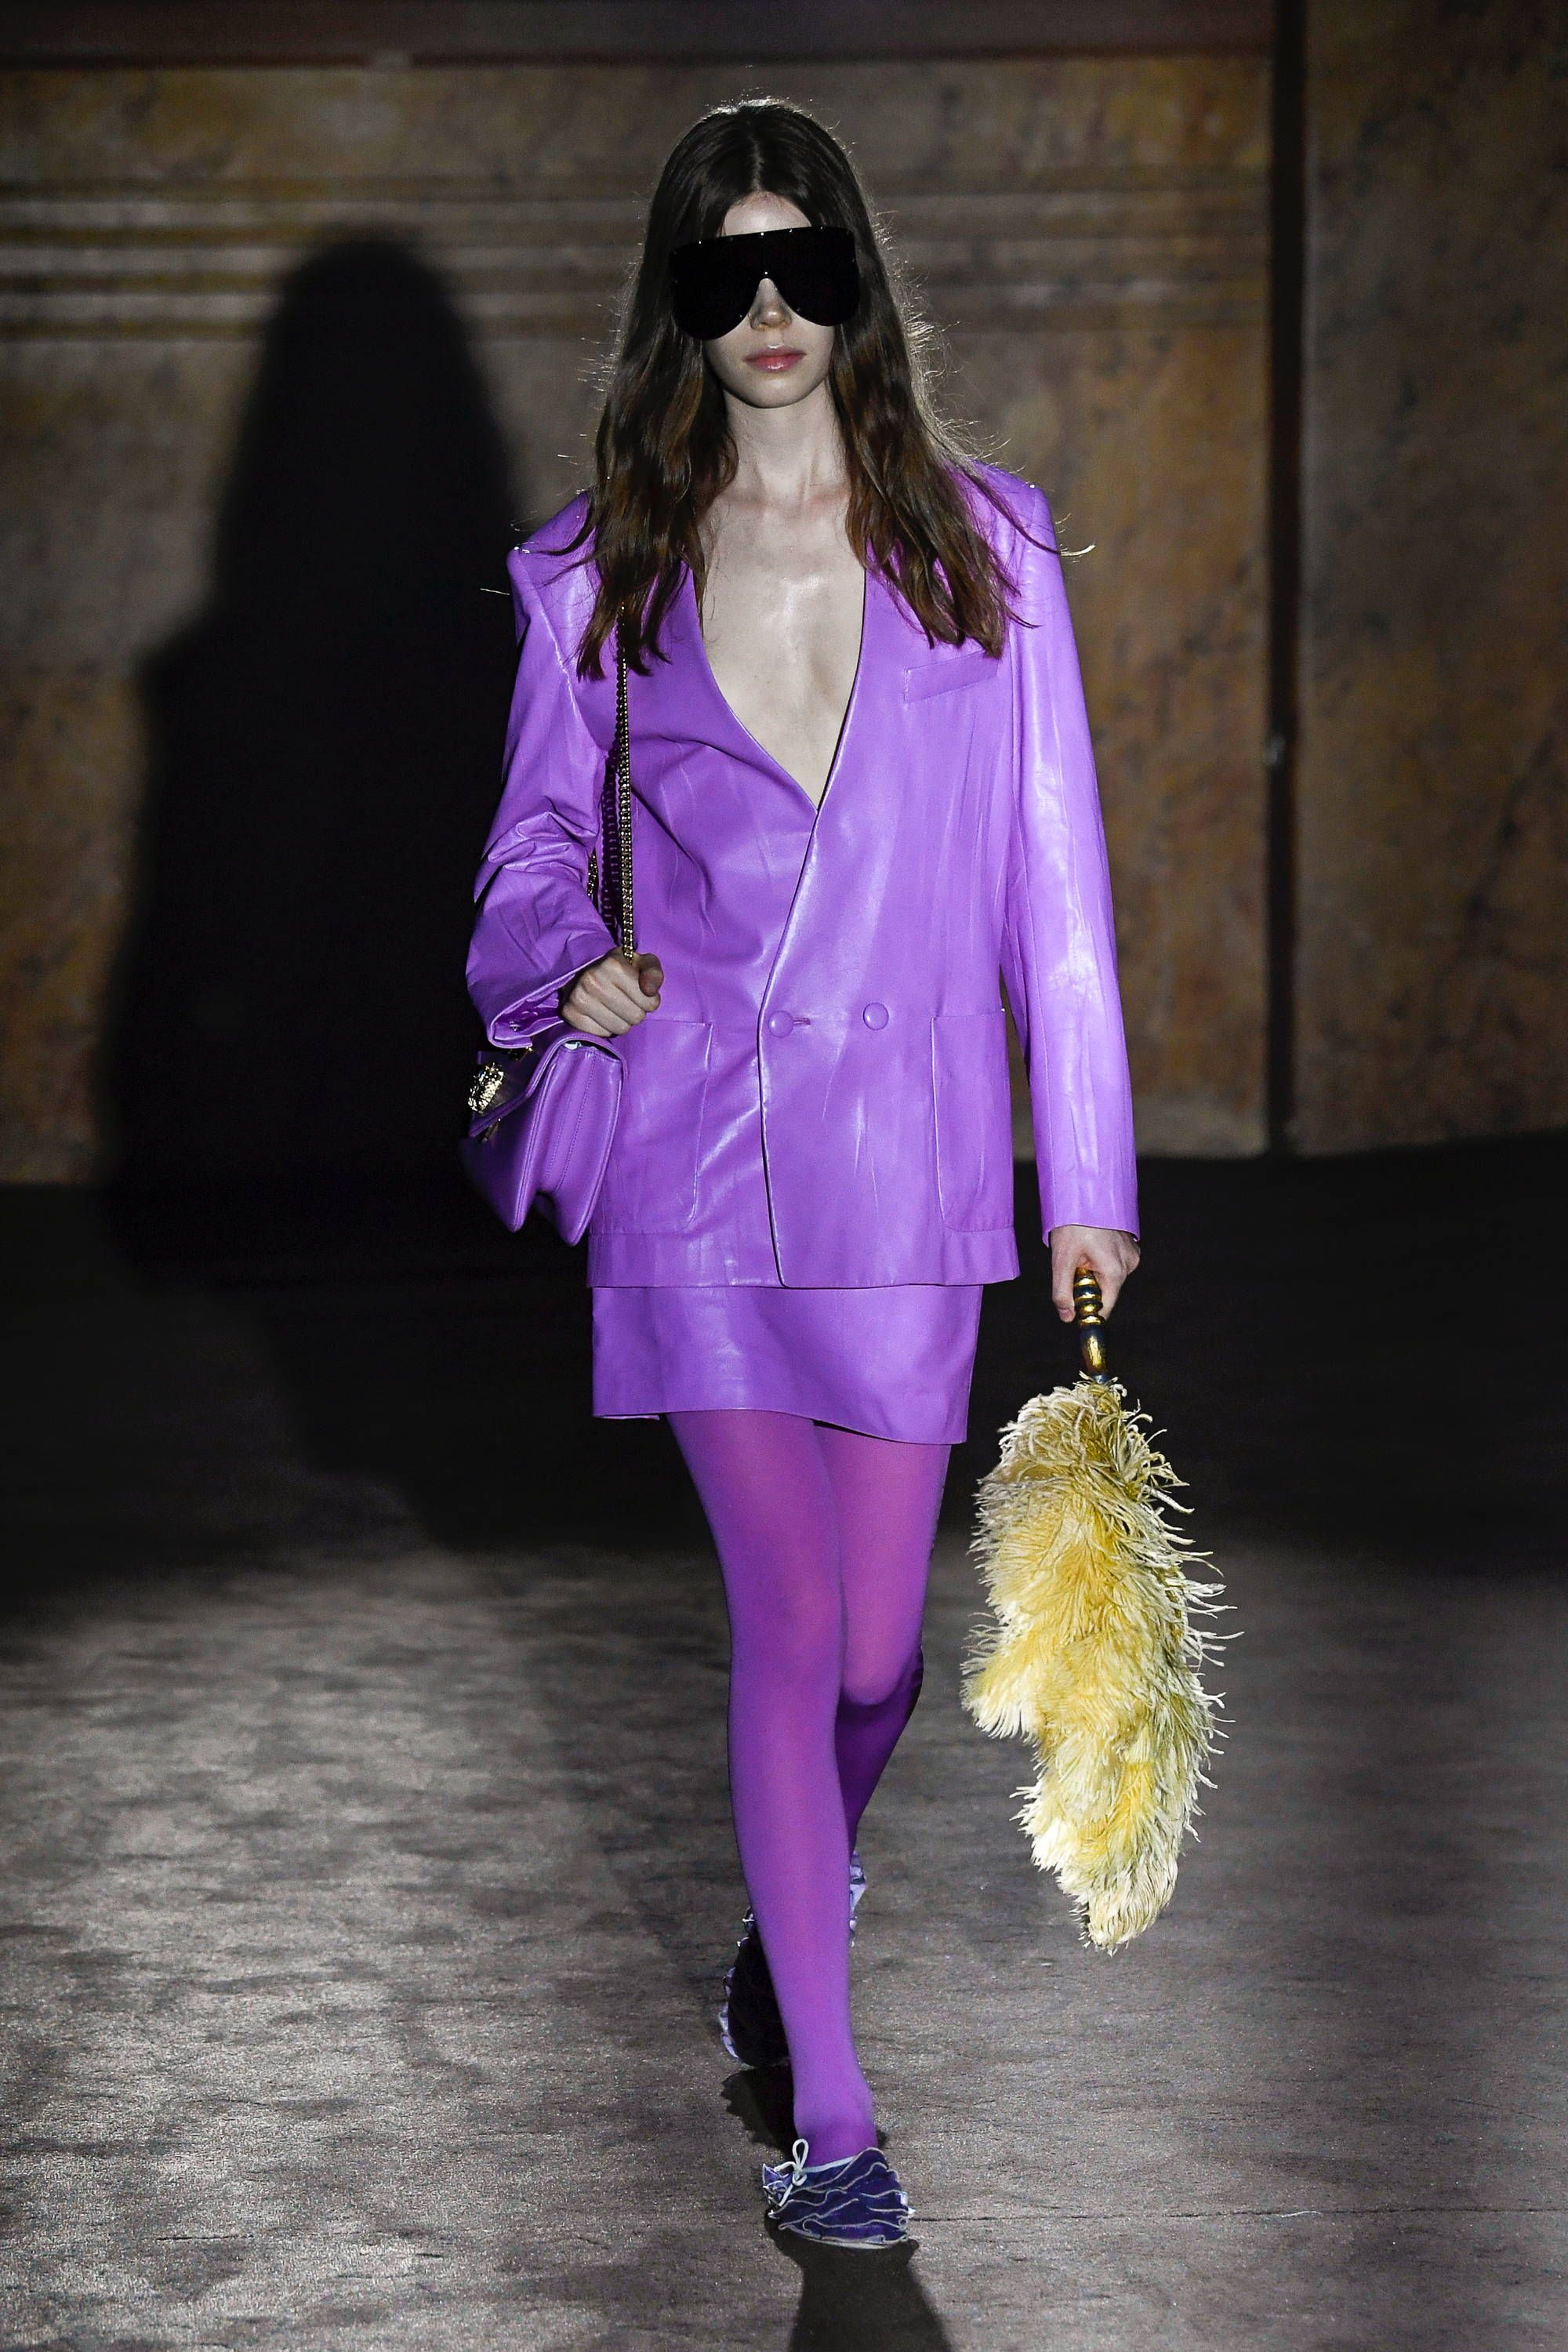 663a0ea62 See every incredible look from the Gucci spring/summer 2019 show, including  this purple leather jacket and skirt, worn with wraparound oversized black  ...